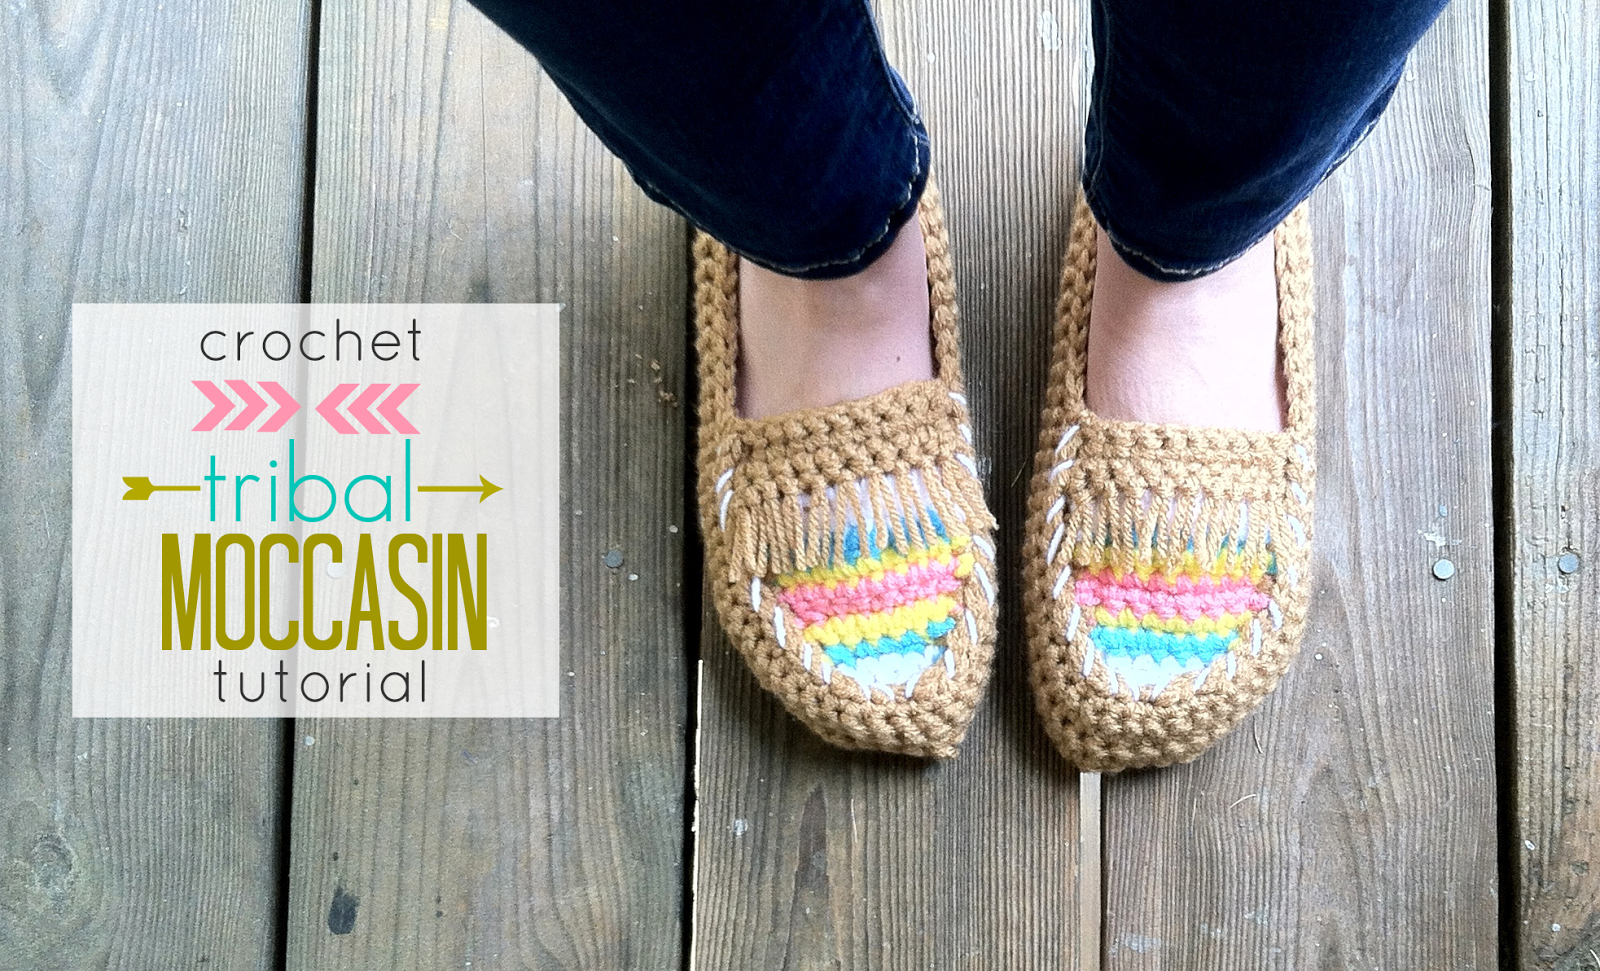 crochet tribal moccasin pattern